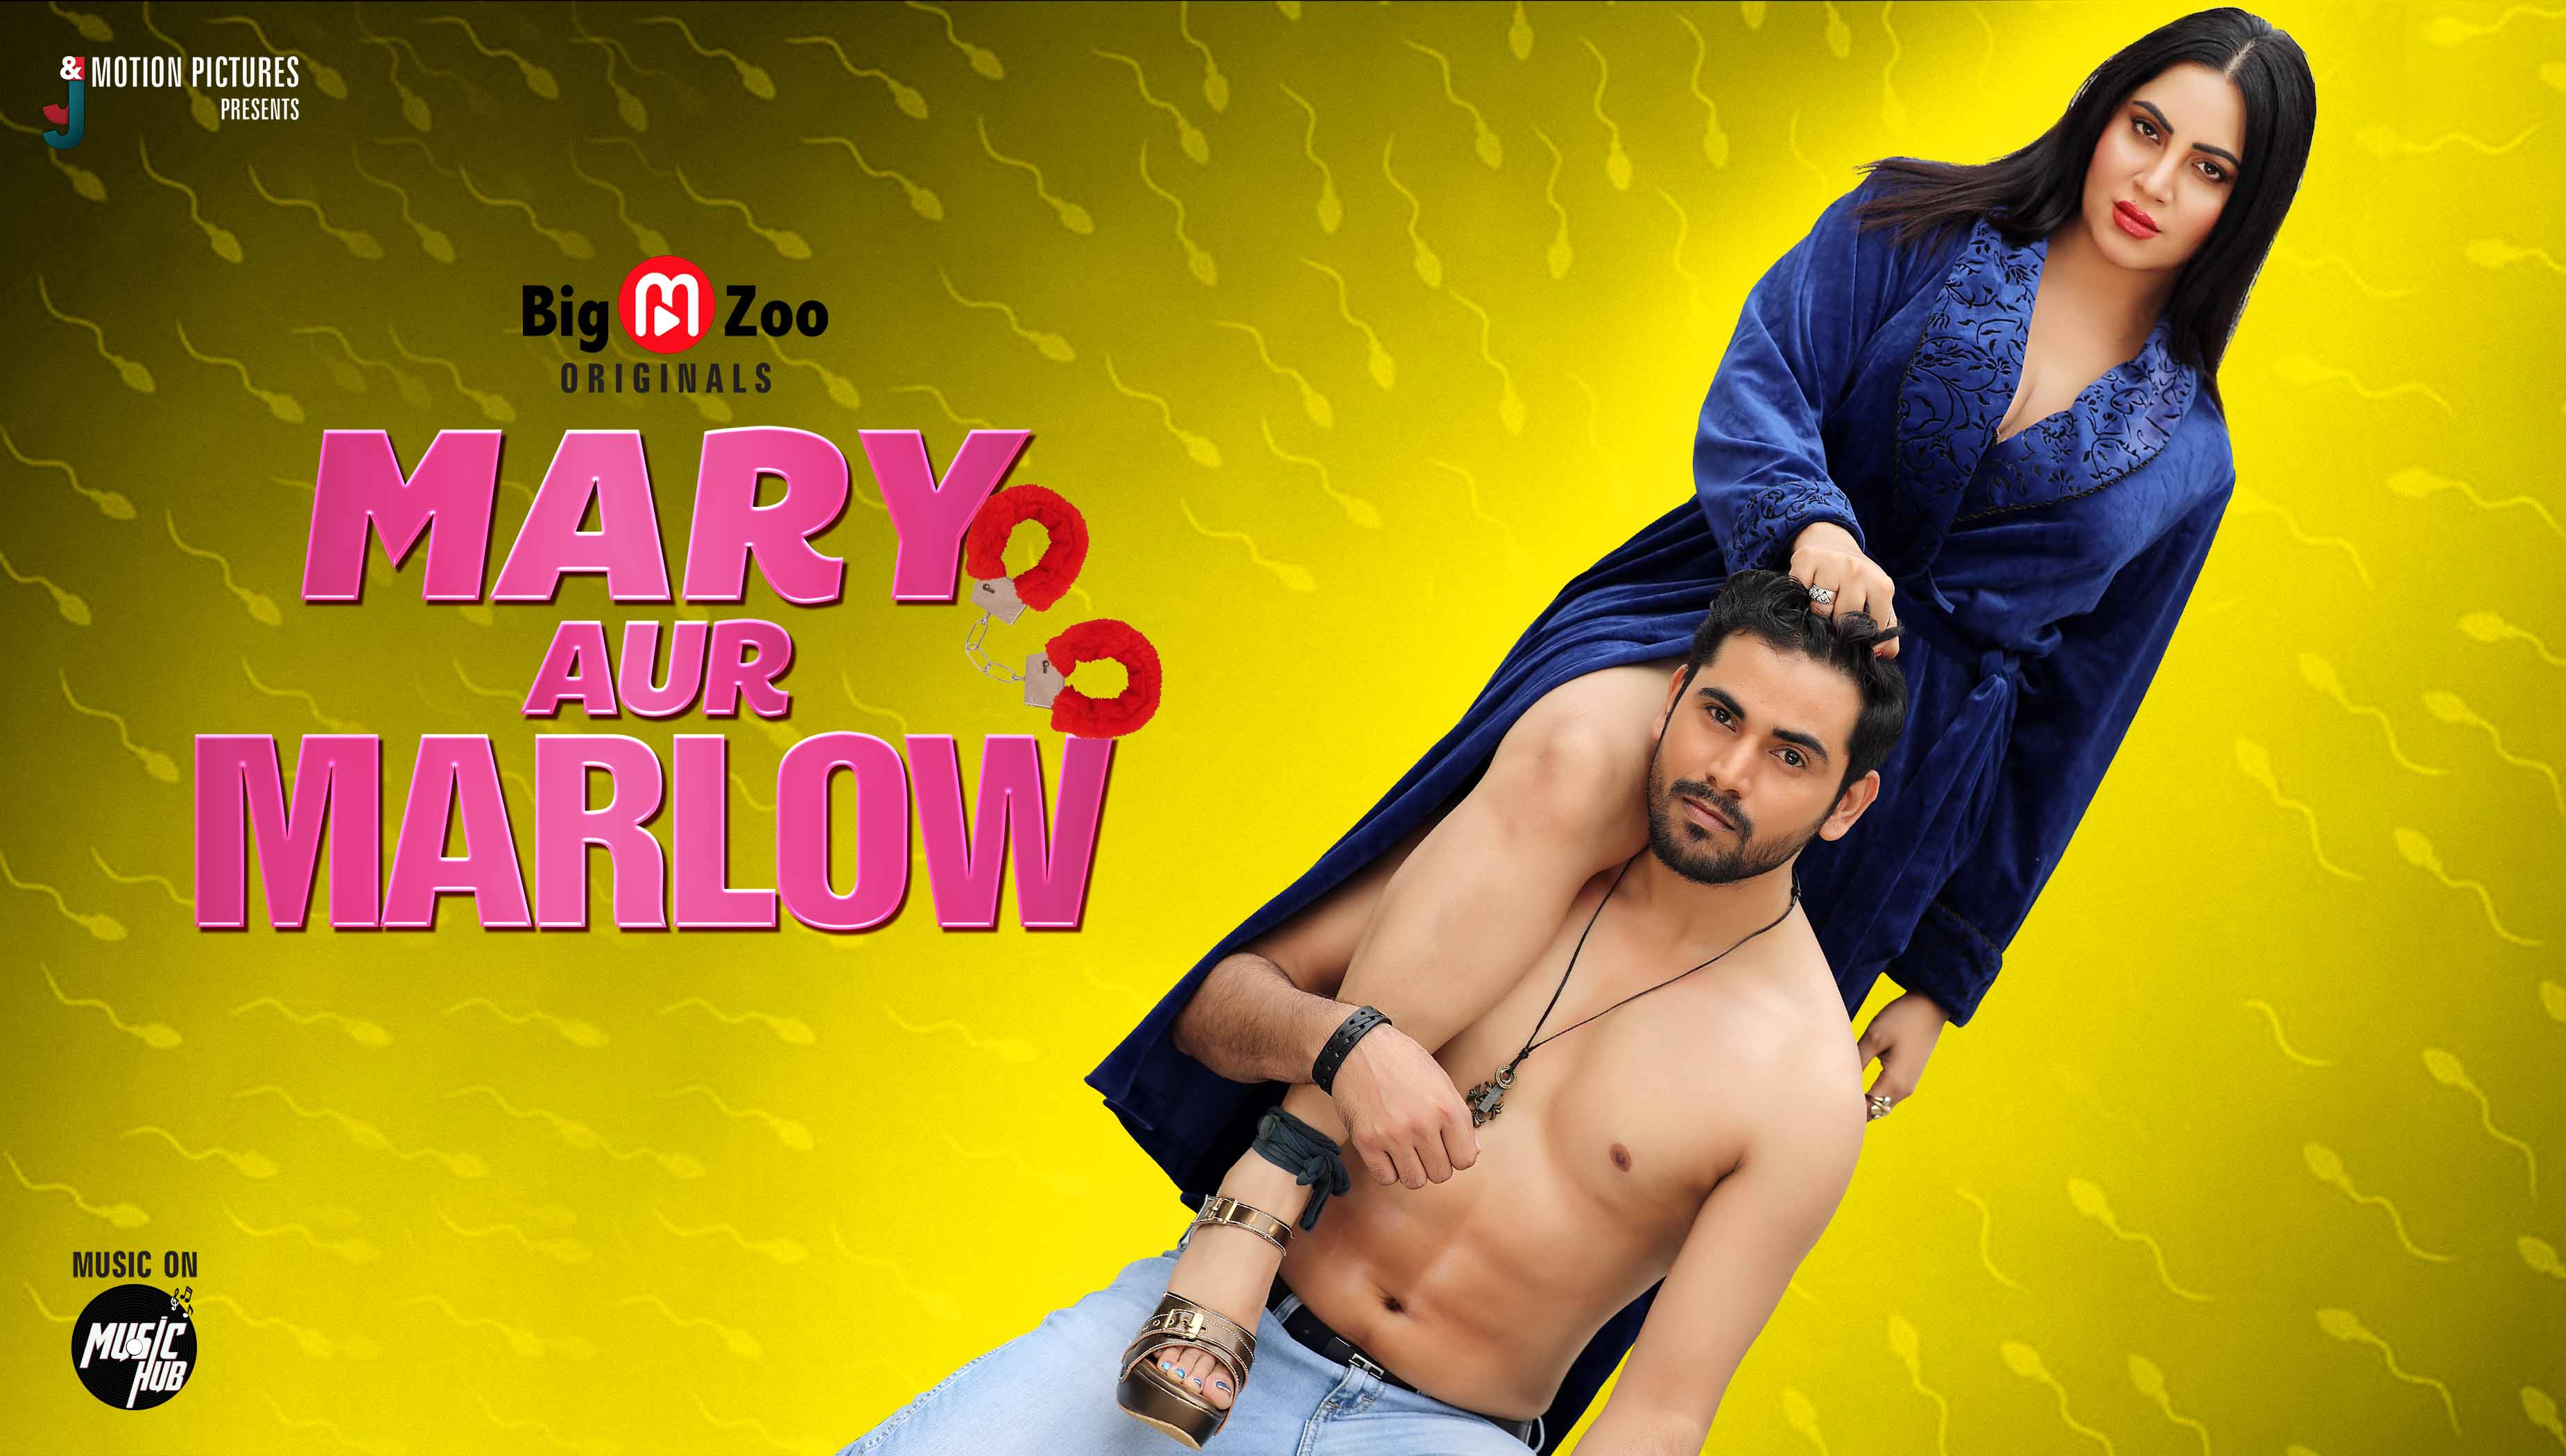 Mary Aur Marlow 2020 S01EP01 Hindi Big Movie Zoo Original Web Series 720p HDRip 100MB x264 AAC